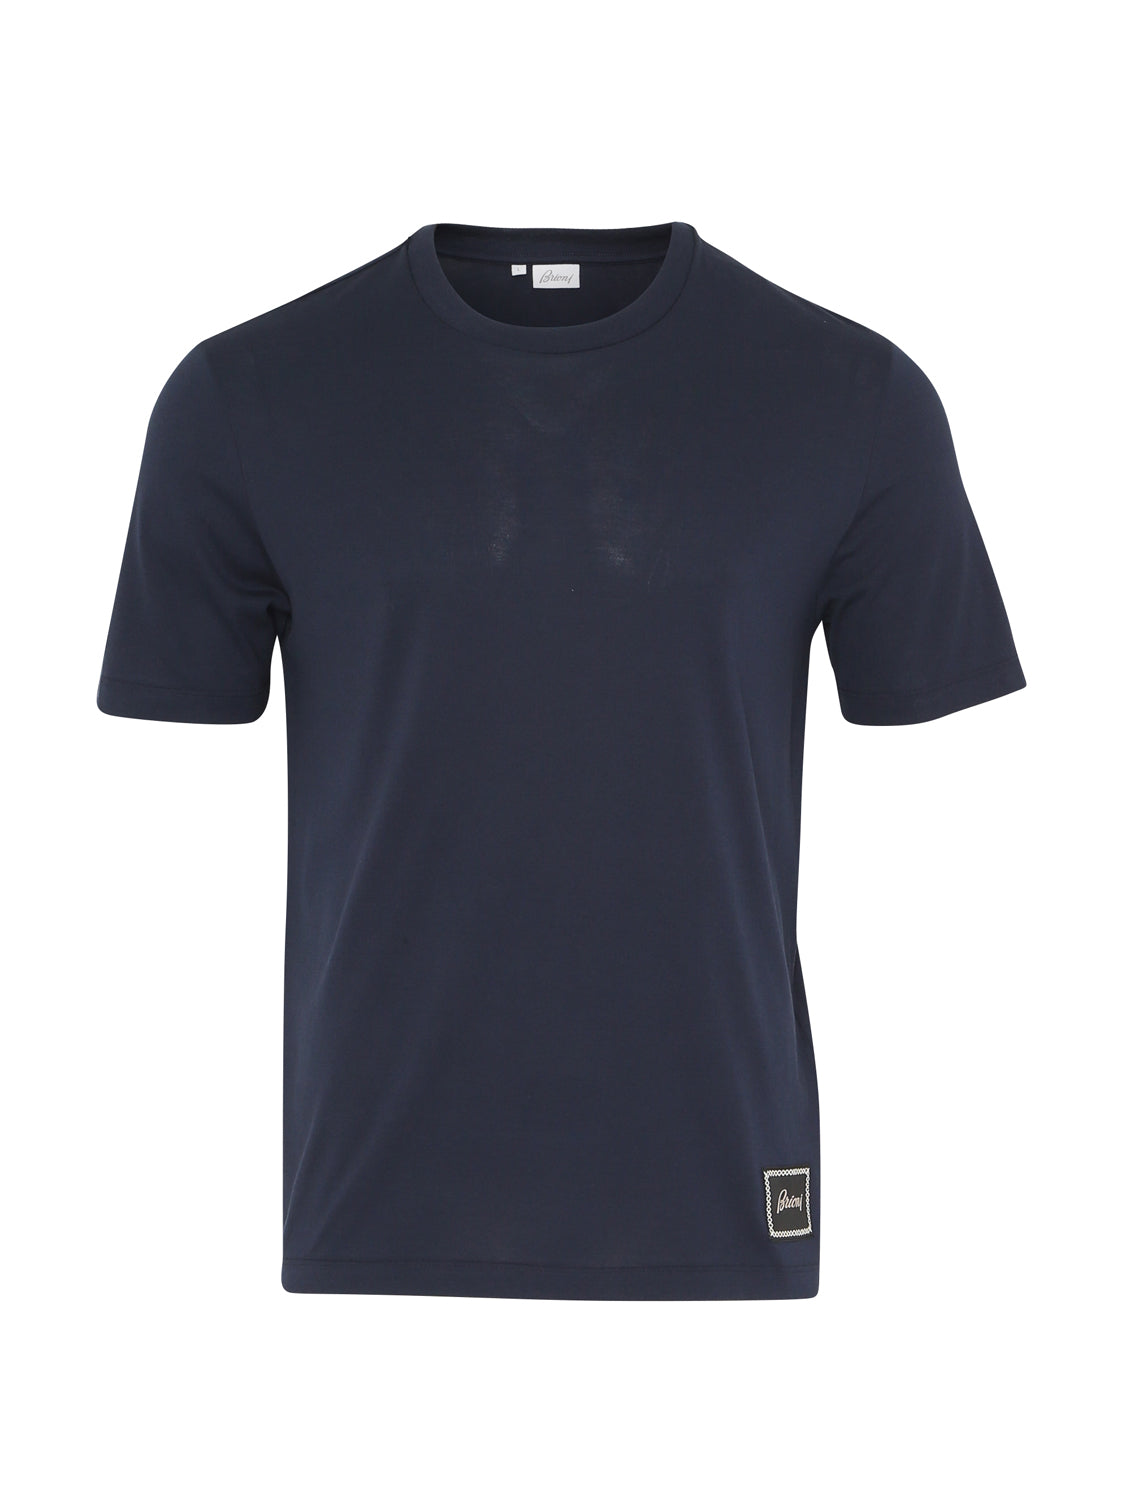 Brioni Cotton T-Shirt (Navy) - Union 22